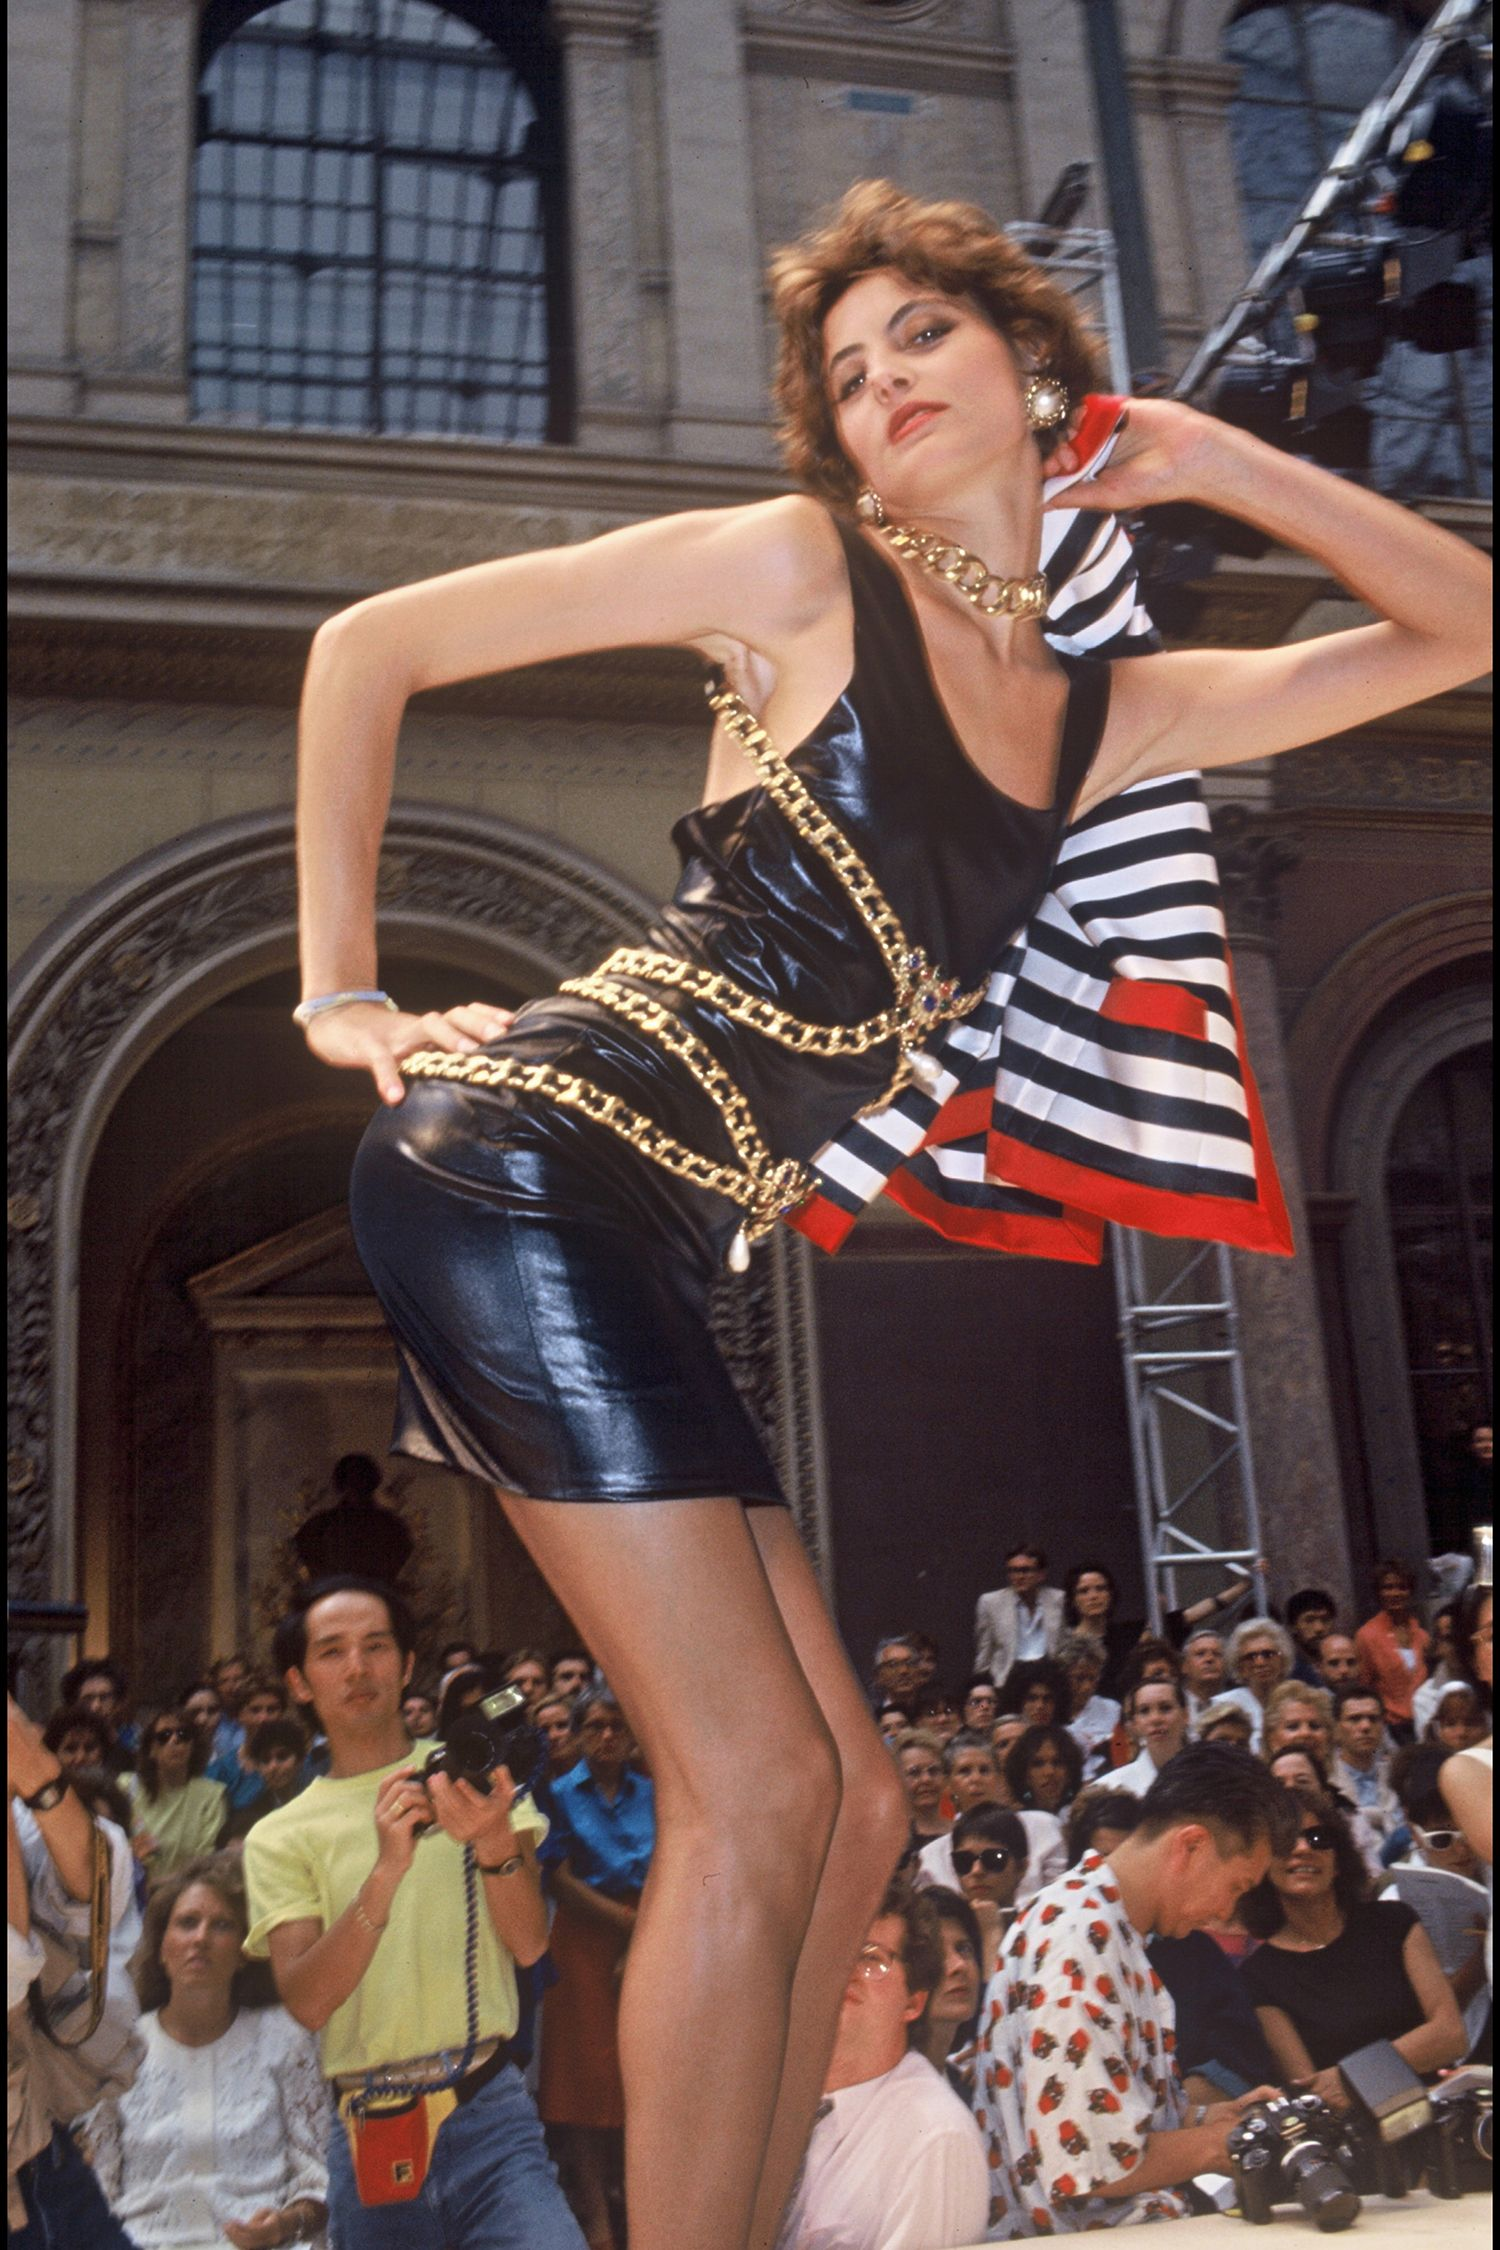 1145dce3f4e7 The Best of 1980s Fashion - Vintage 80s Outfits and Fashion Trends